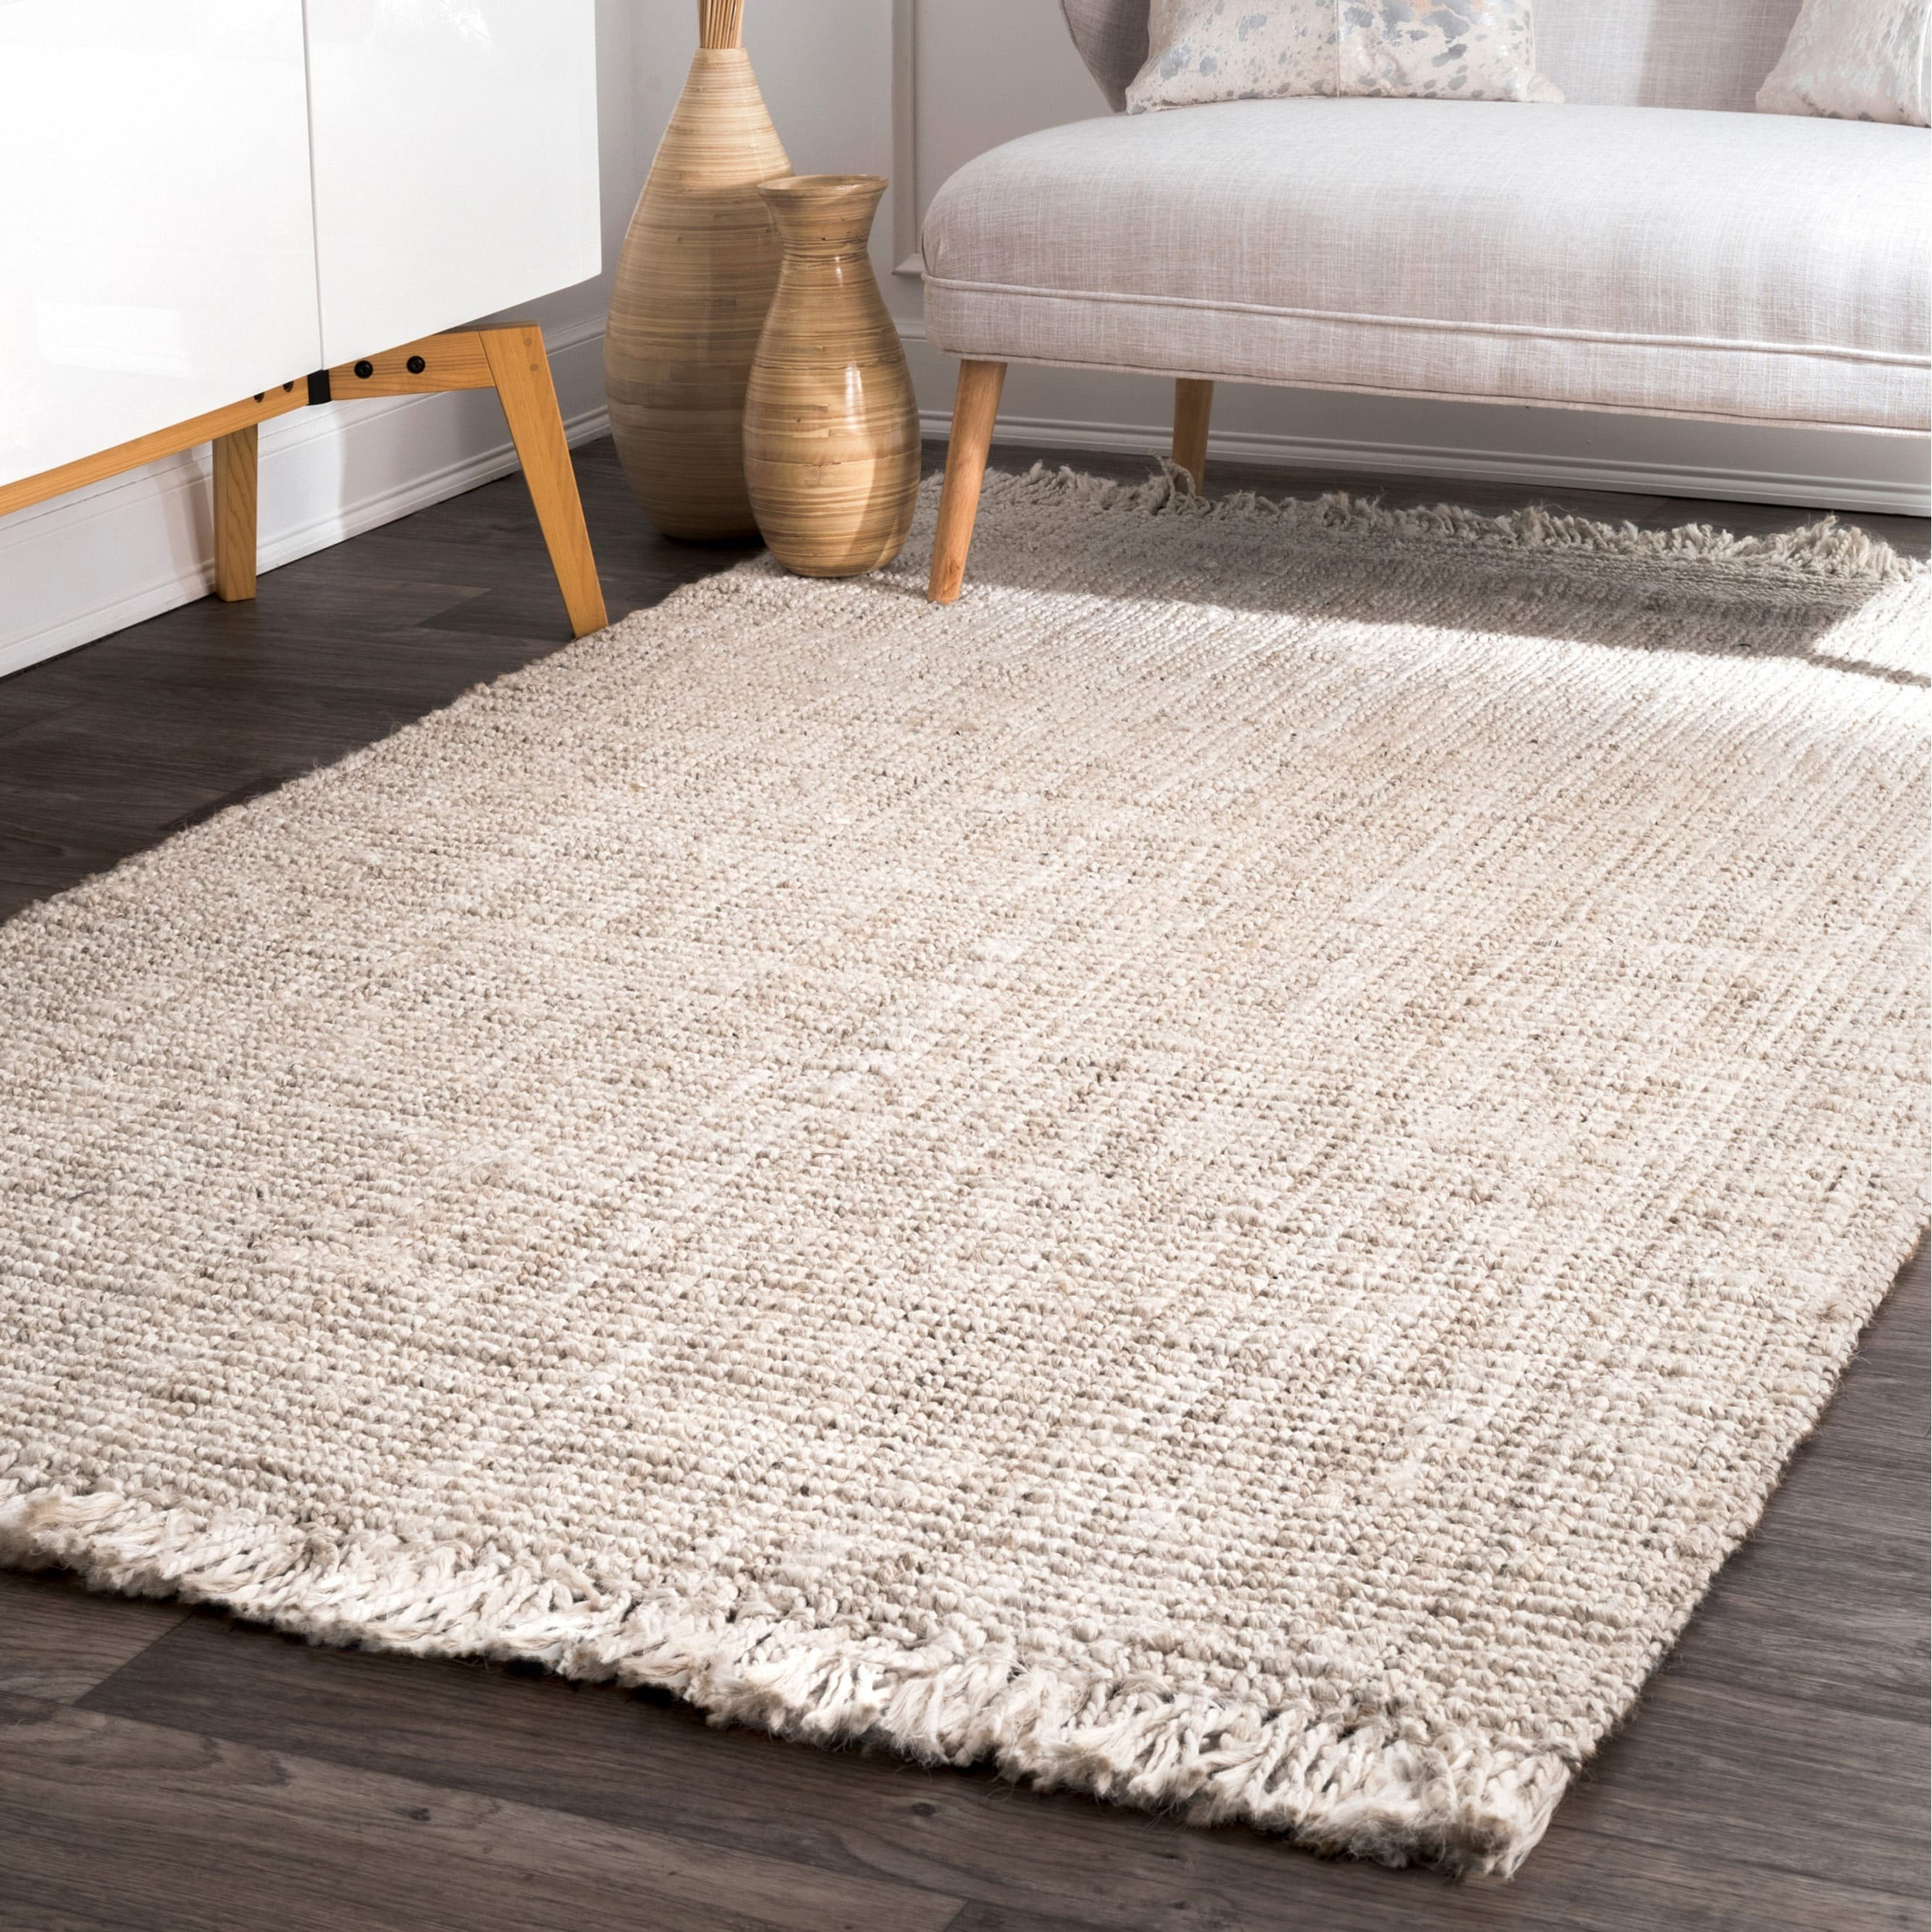 Ivory Jute 8 X 10 Area Rugs Online At Com Our Best Deals